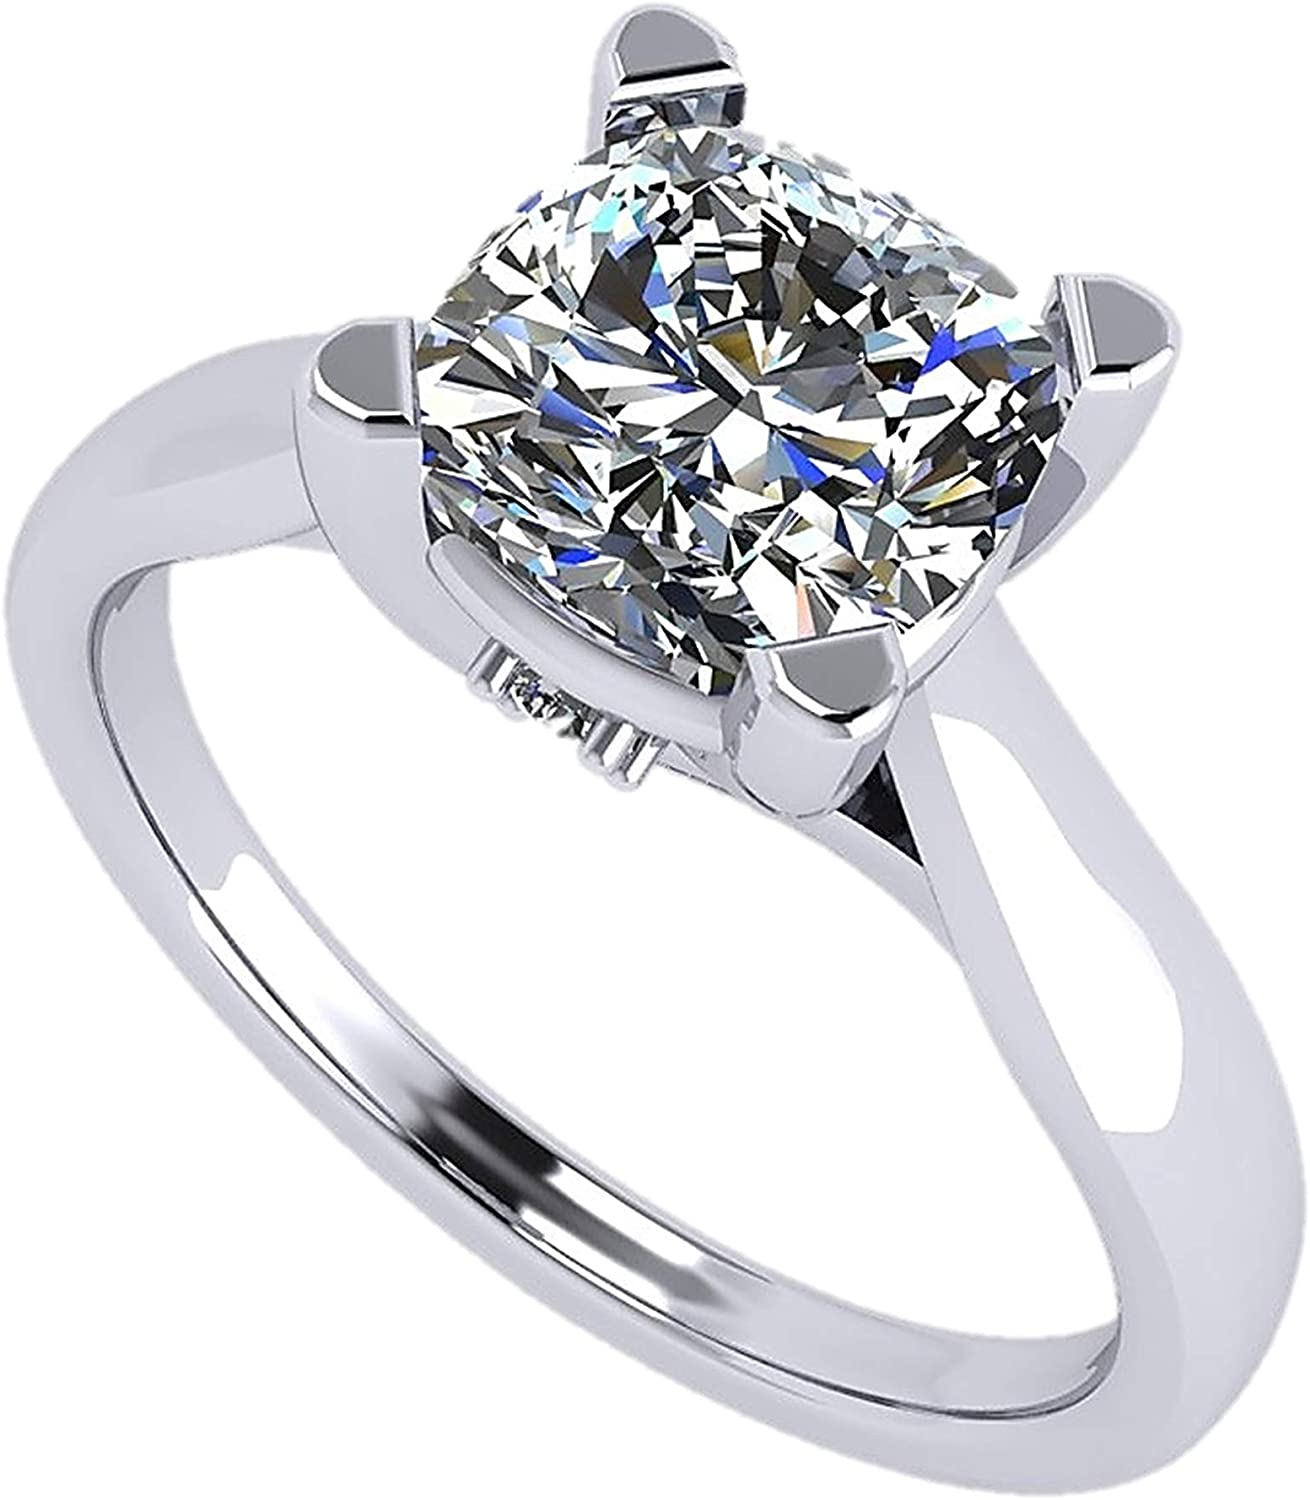 Cushion Cut Simulated Diamond Solitaire Engagement ring Lucita style 1.5 to 3.0 carat Swarovski Zirconia